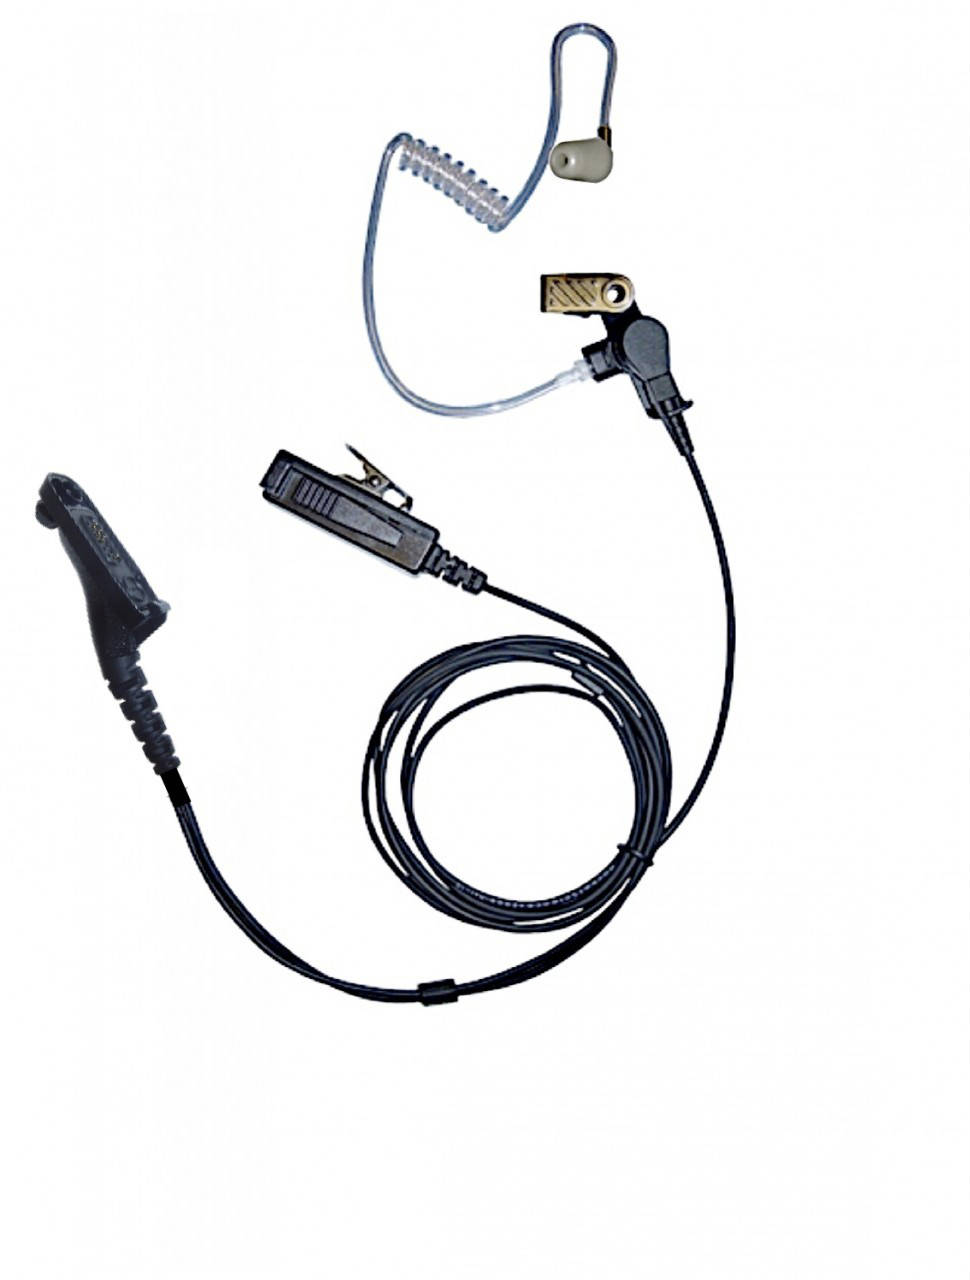 IMPRES 2-WIRE SURVEILLANCE KIT - DP4000 SERIES